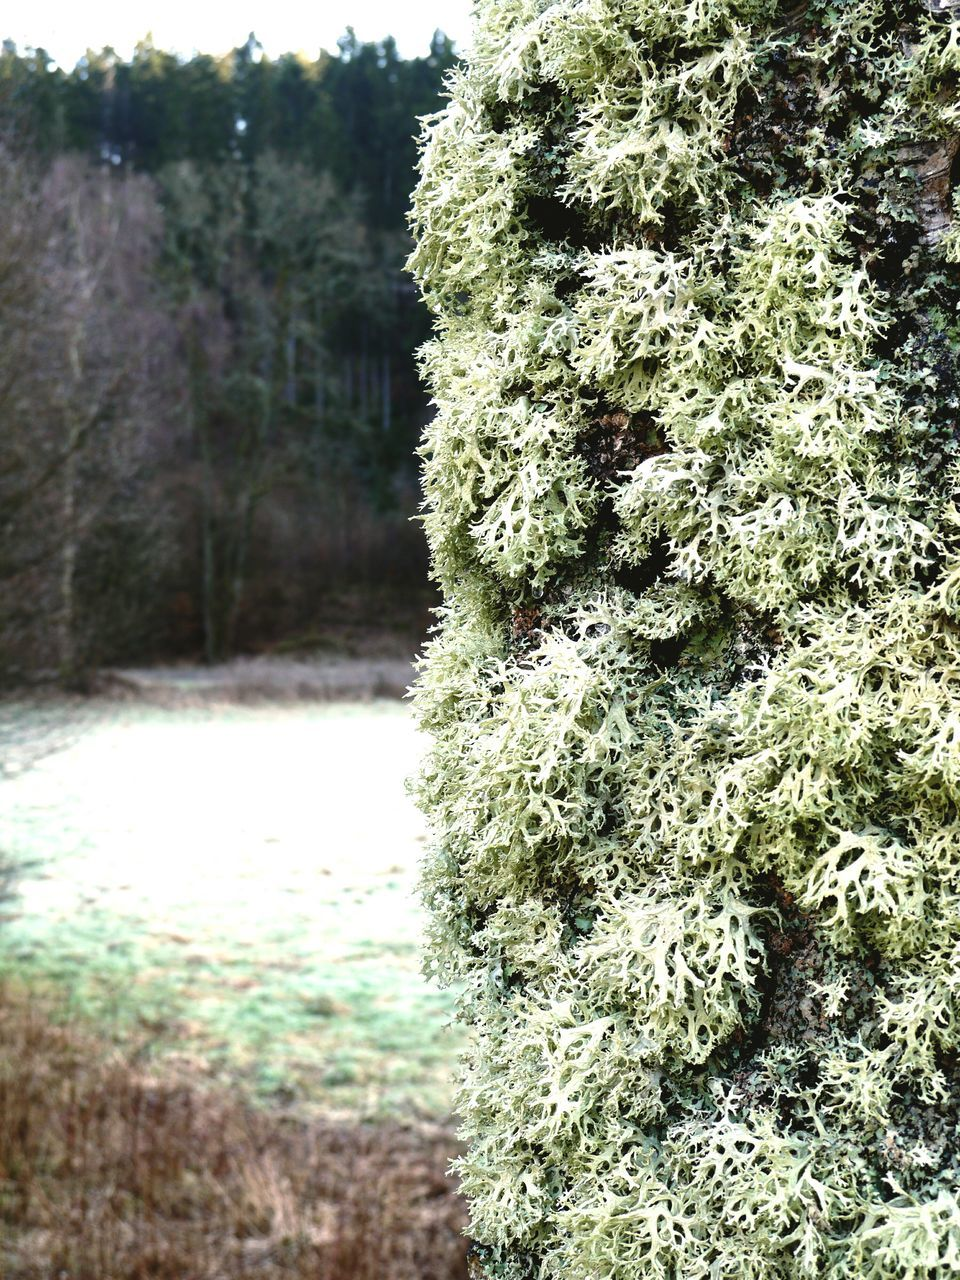 Lichen Growing On Tree Trunk In Forest